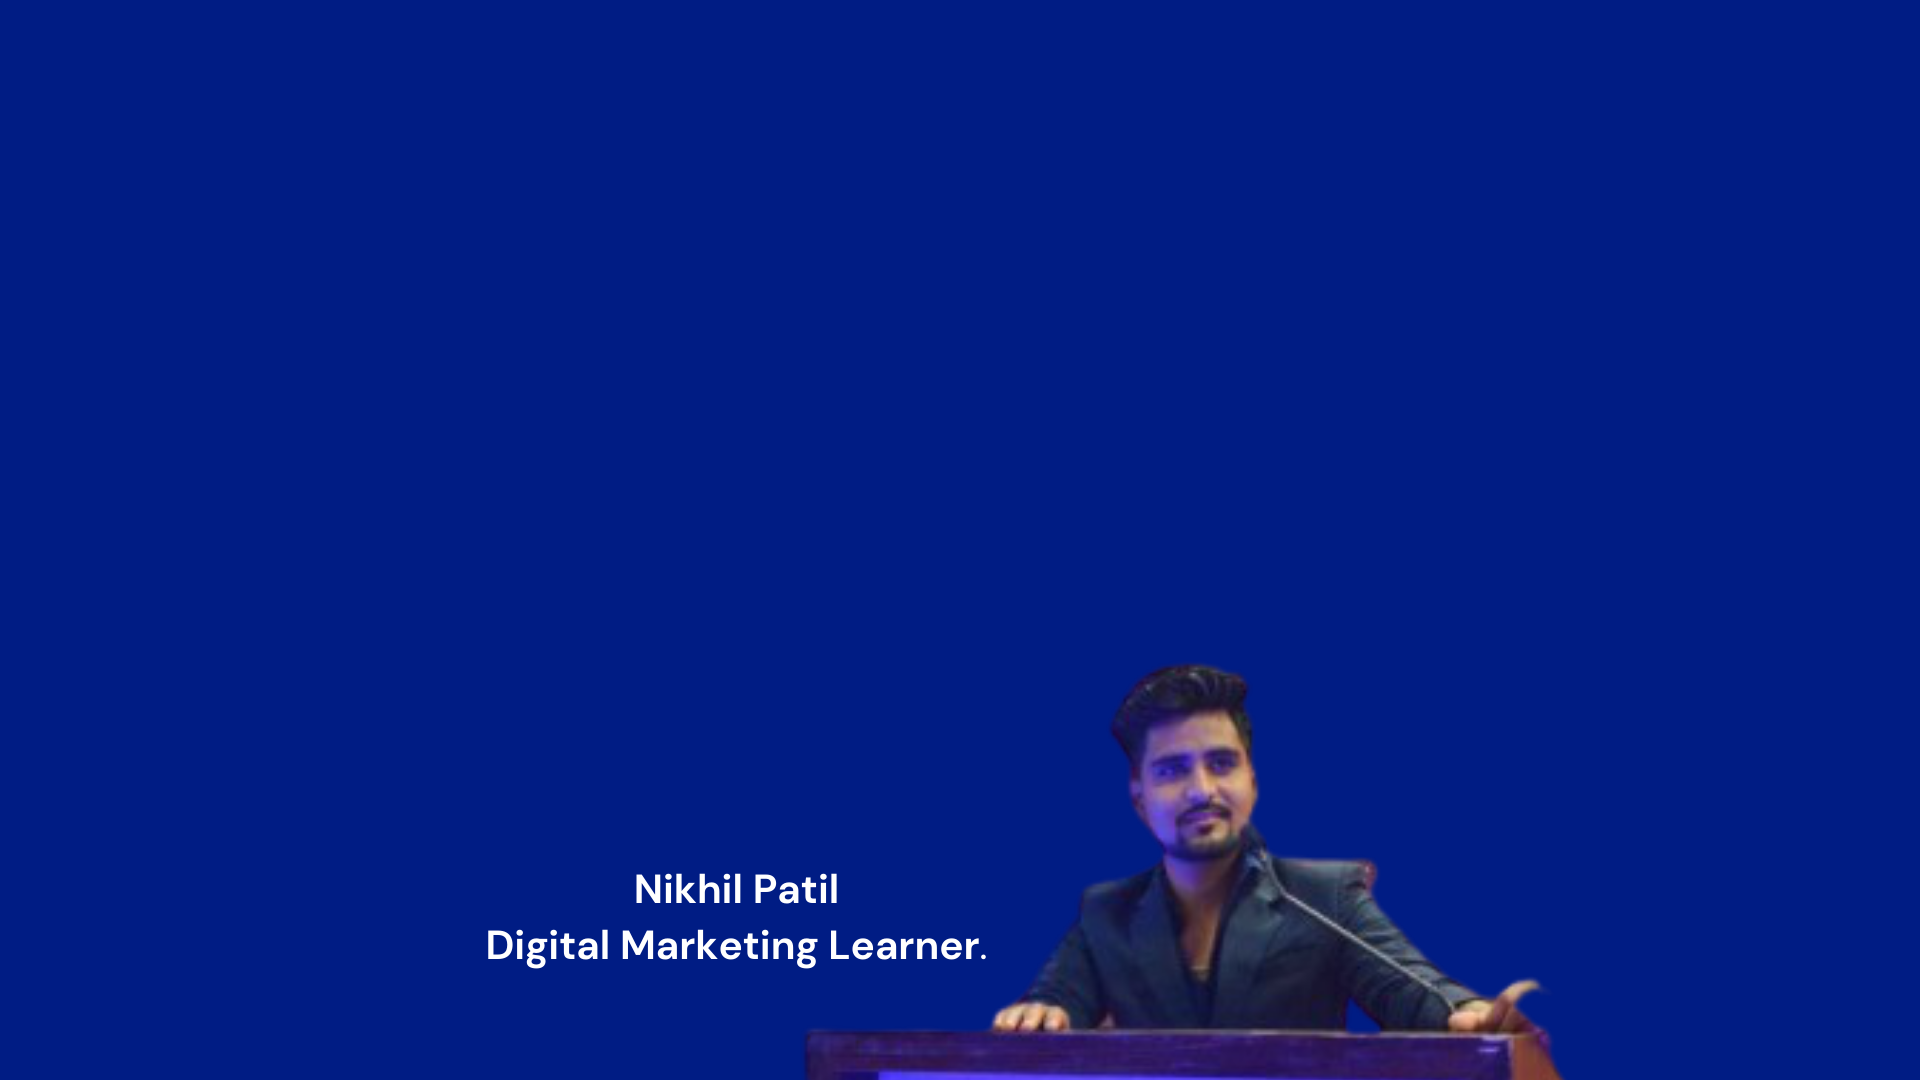 With Bachelors in CS & Masters in AI and Ml, I am a Digital Marketer Now